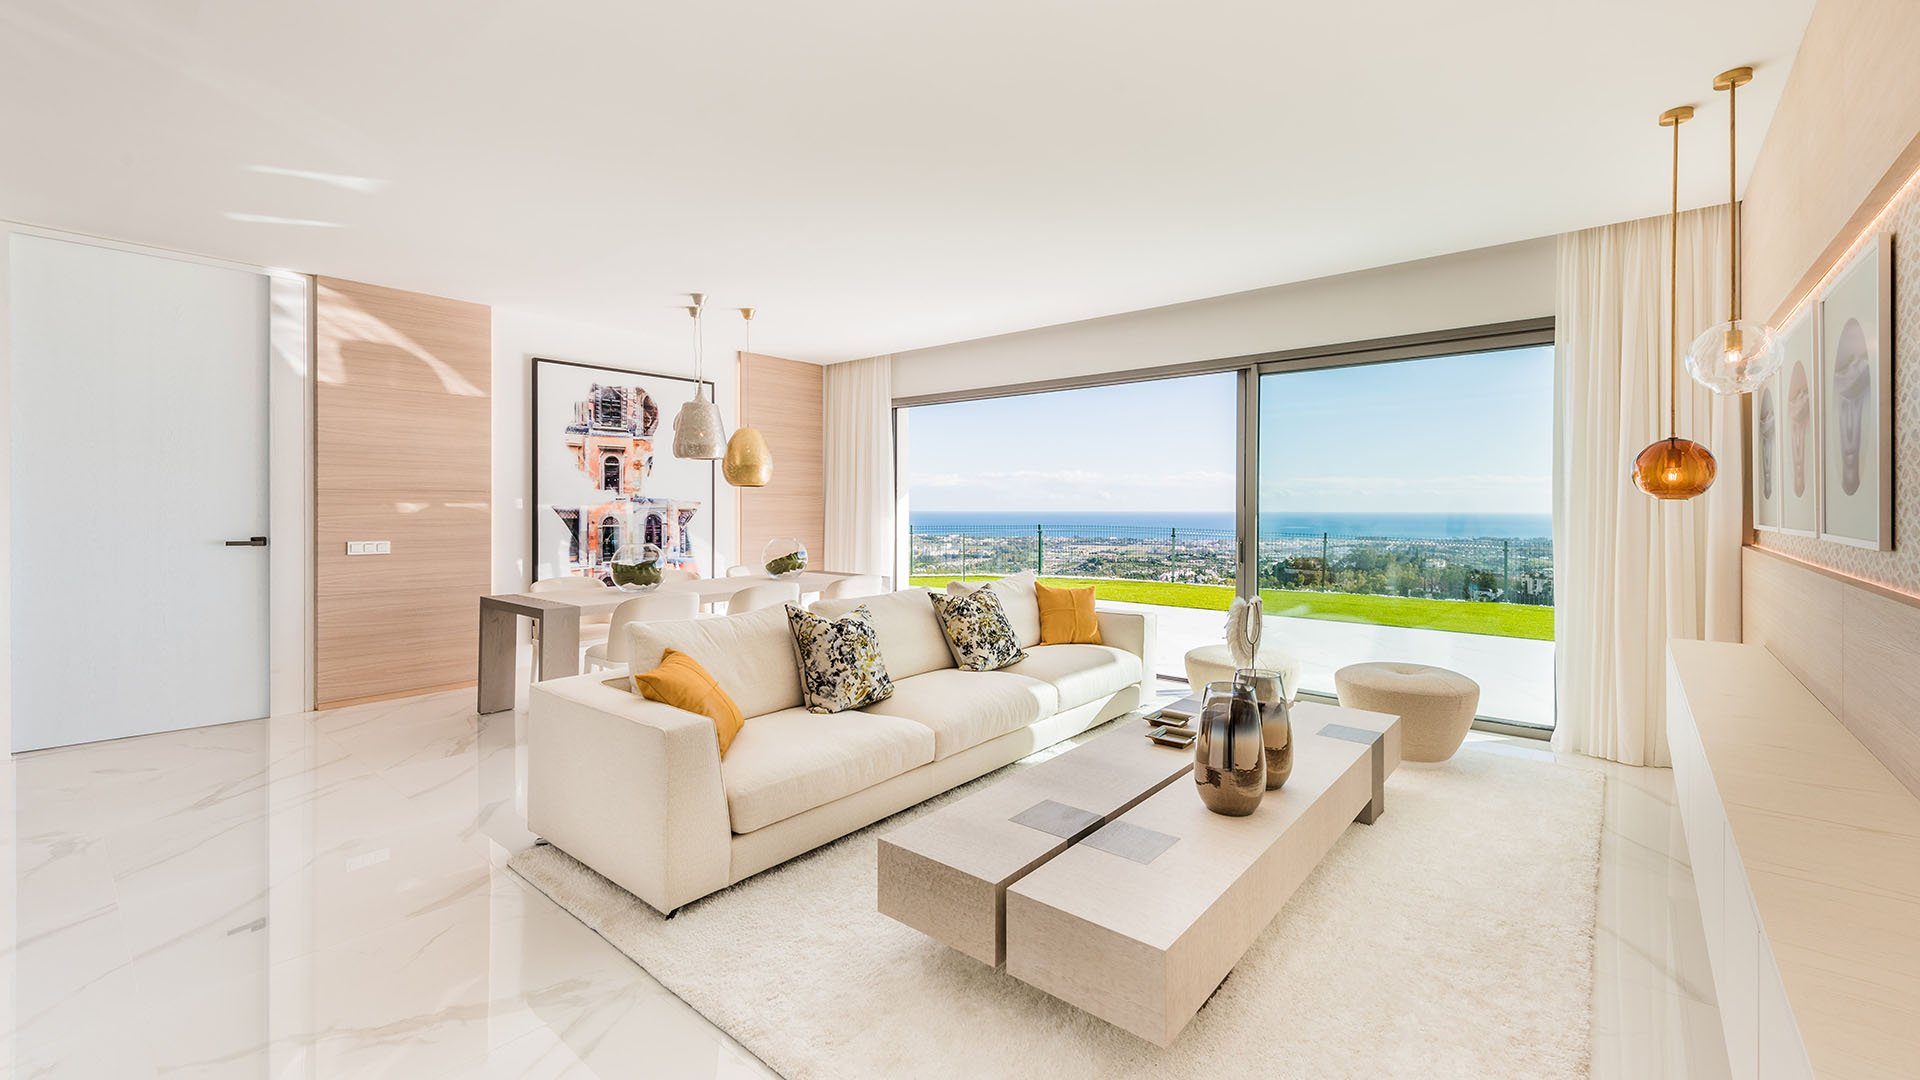 Byu Hills: Luxurious boutique project with stunning views in Benahavís